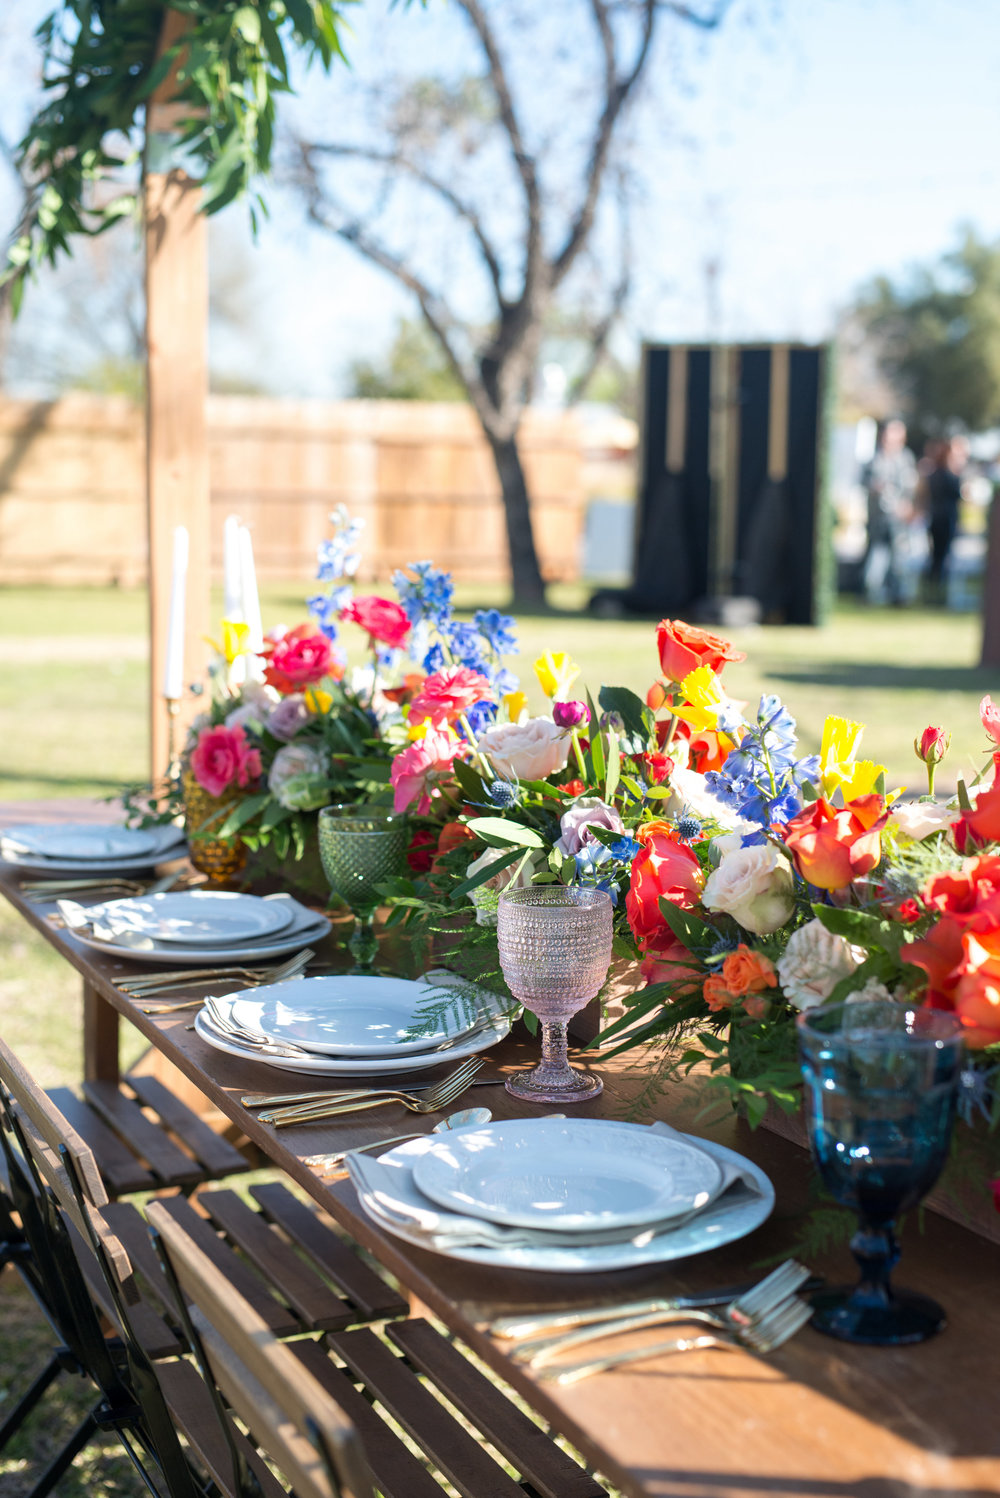 Colorful centerpieces with vintage glasses - Arizona Wedding - The Farm at South Mountain - Wedding Inspiration